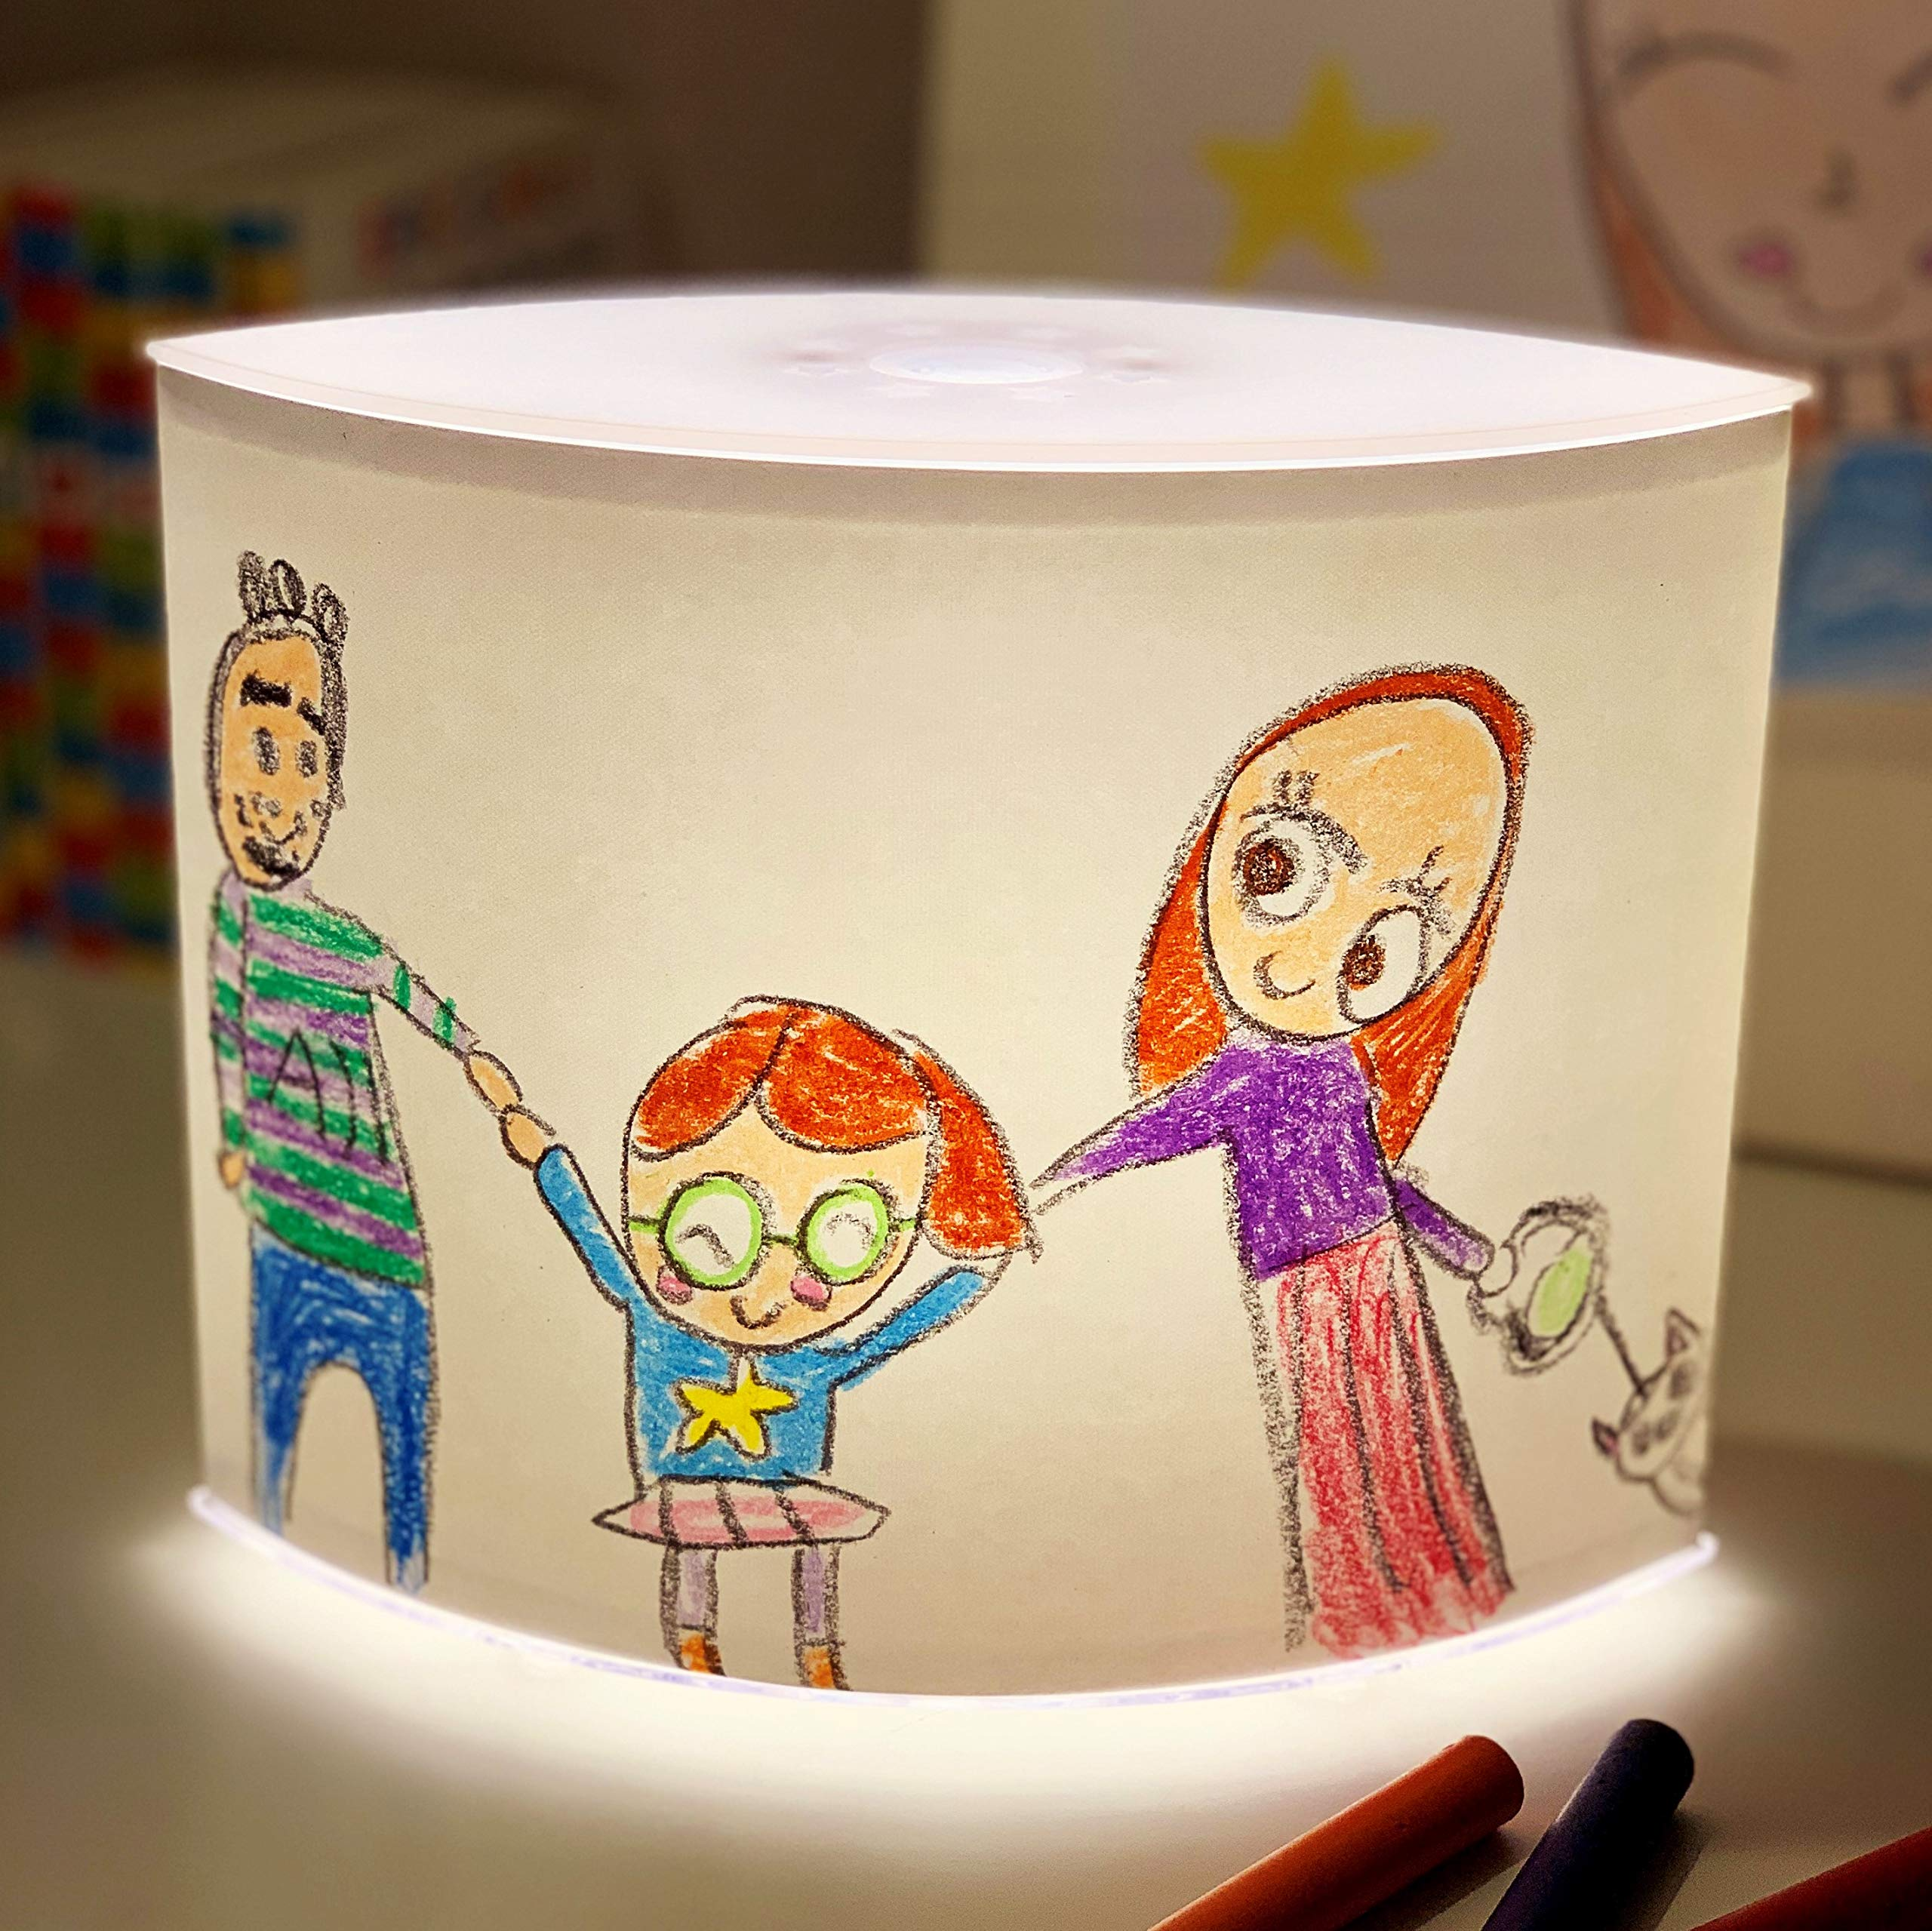 DIY 3-Stage Dimmer Table Lamp - Child Artwork Display NightStand Nightstand for Bedrooms & Living Rooms, Bedside Lights Lampshade Kit, Kid's Art Drawing and Photos for Customized Gift Ideas! by Greego Lamp